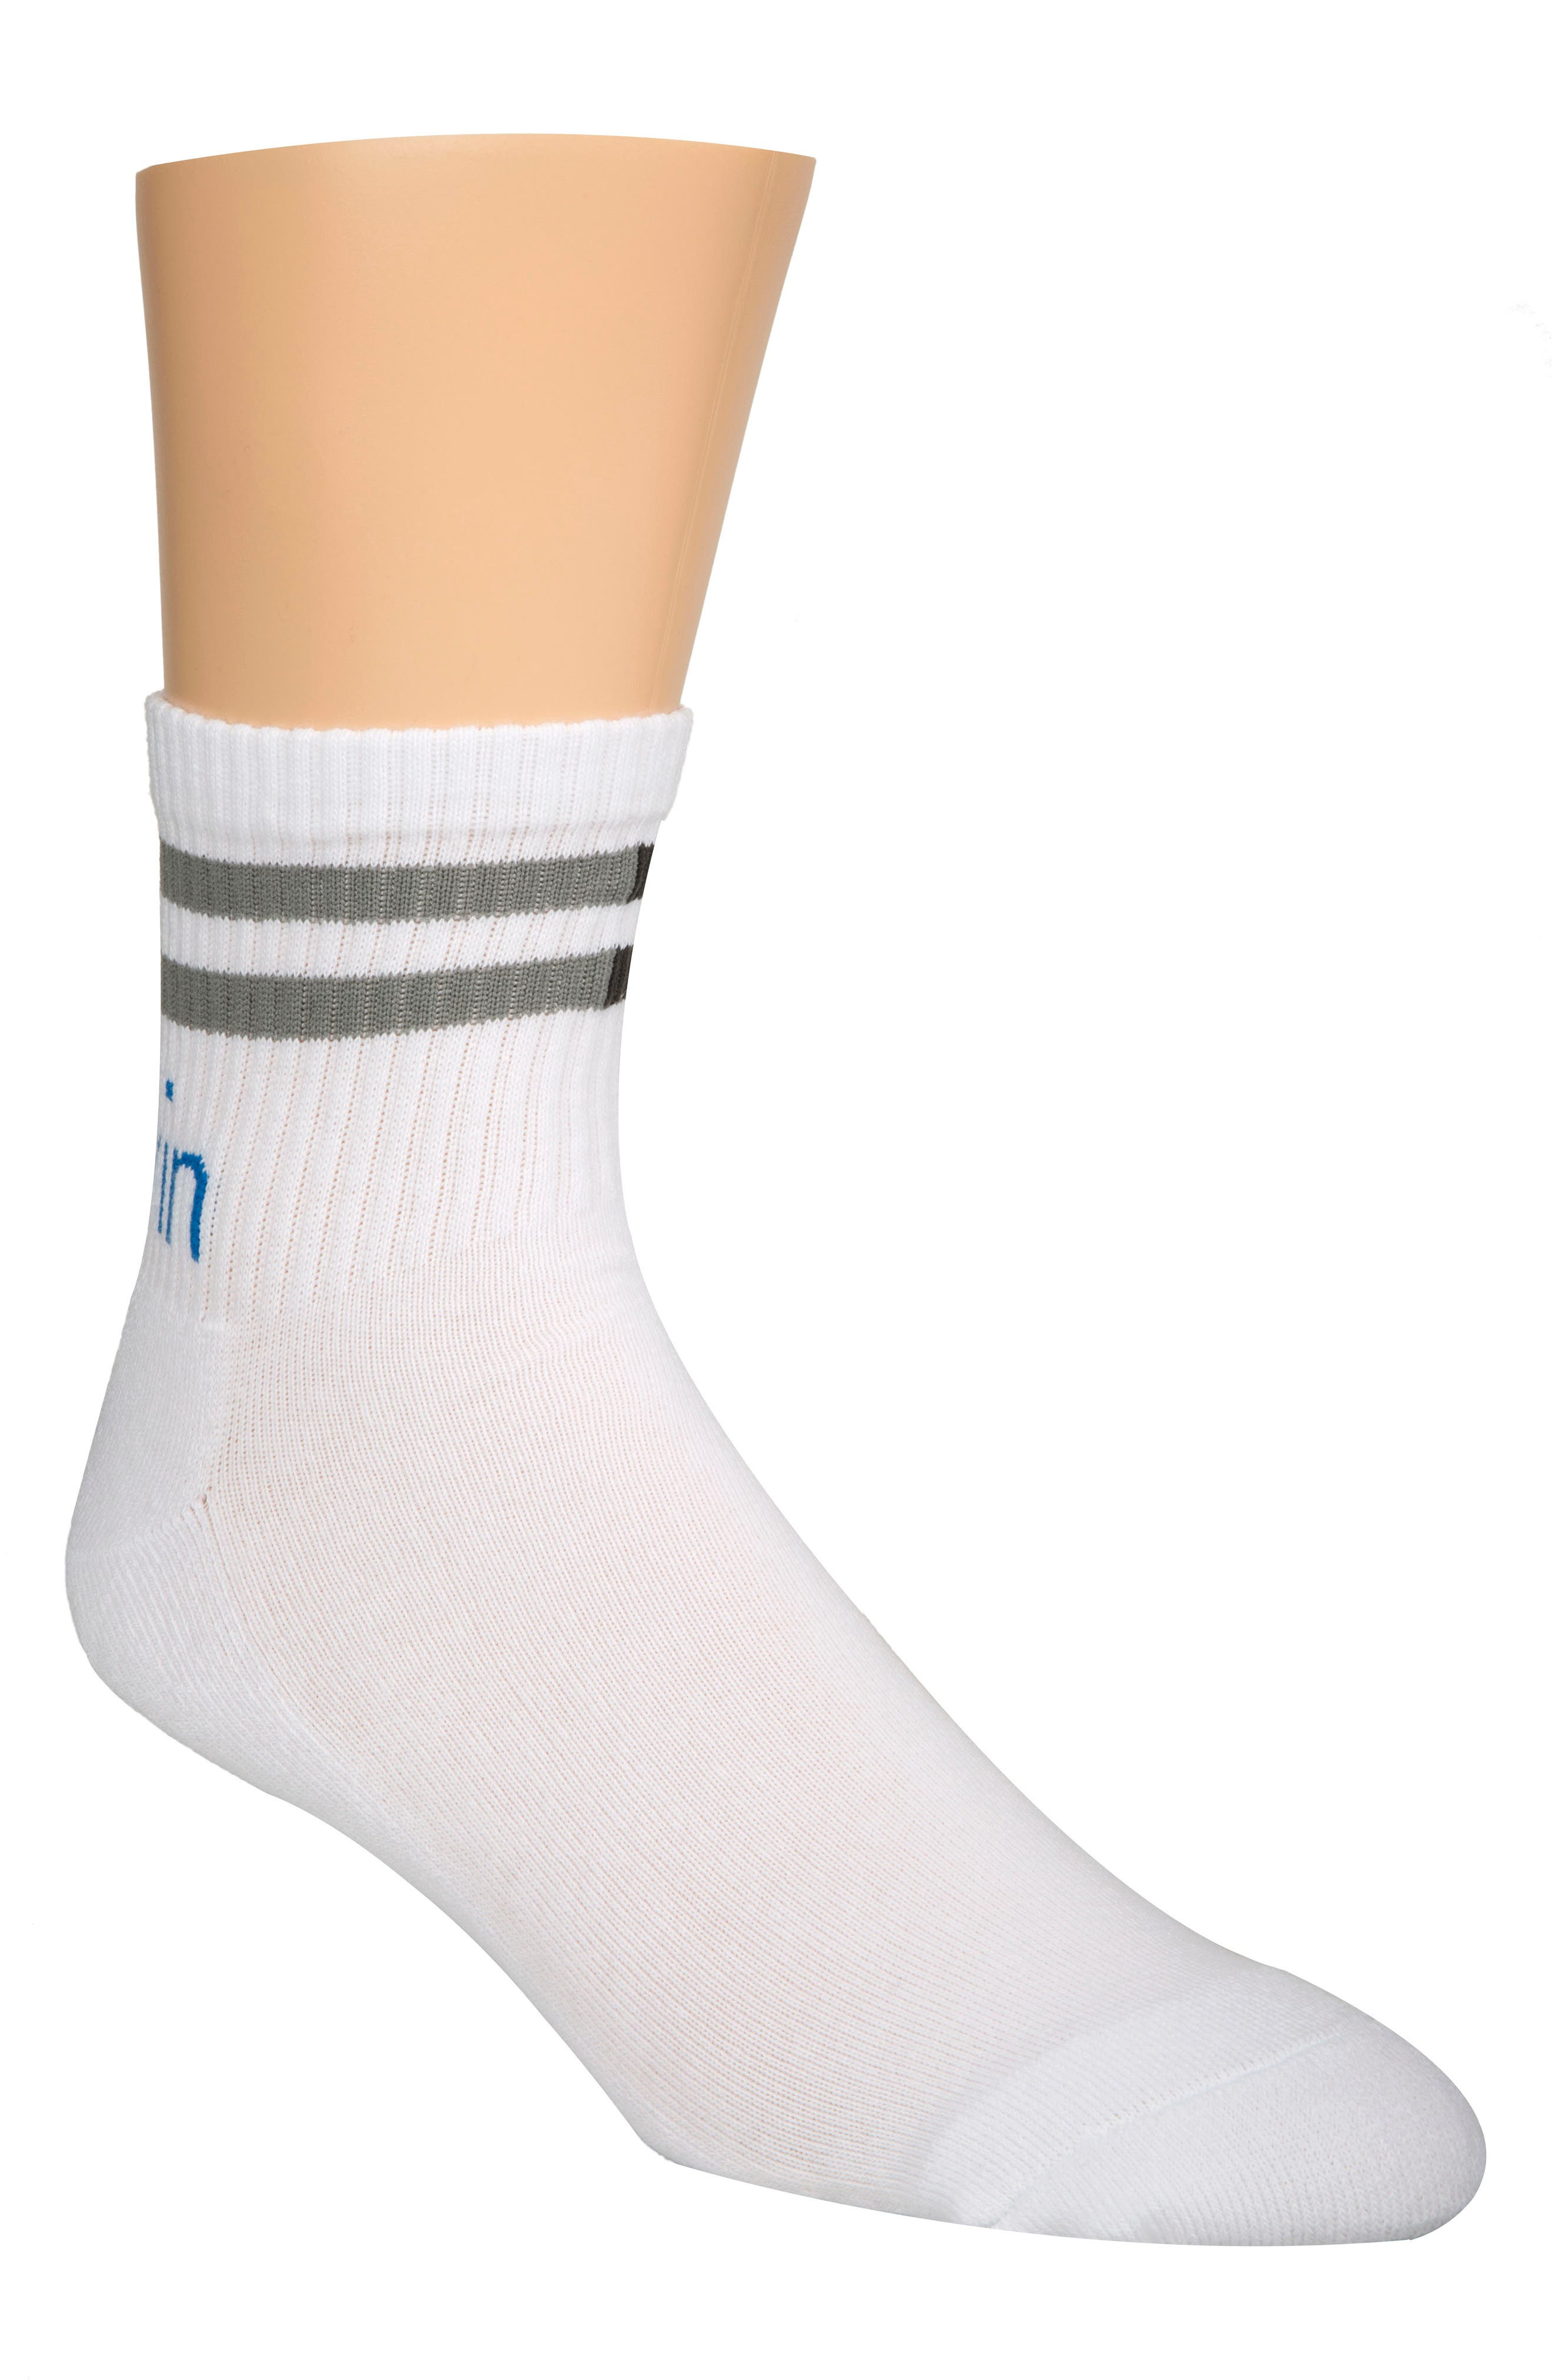 Logo Crew Socks,                         Main,                         color, White